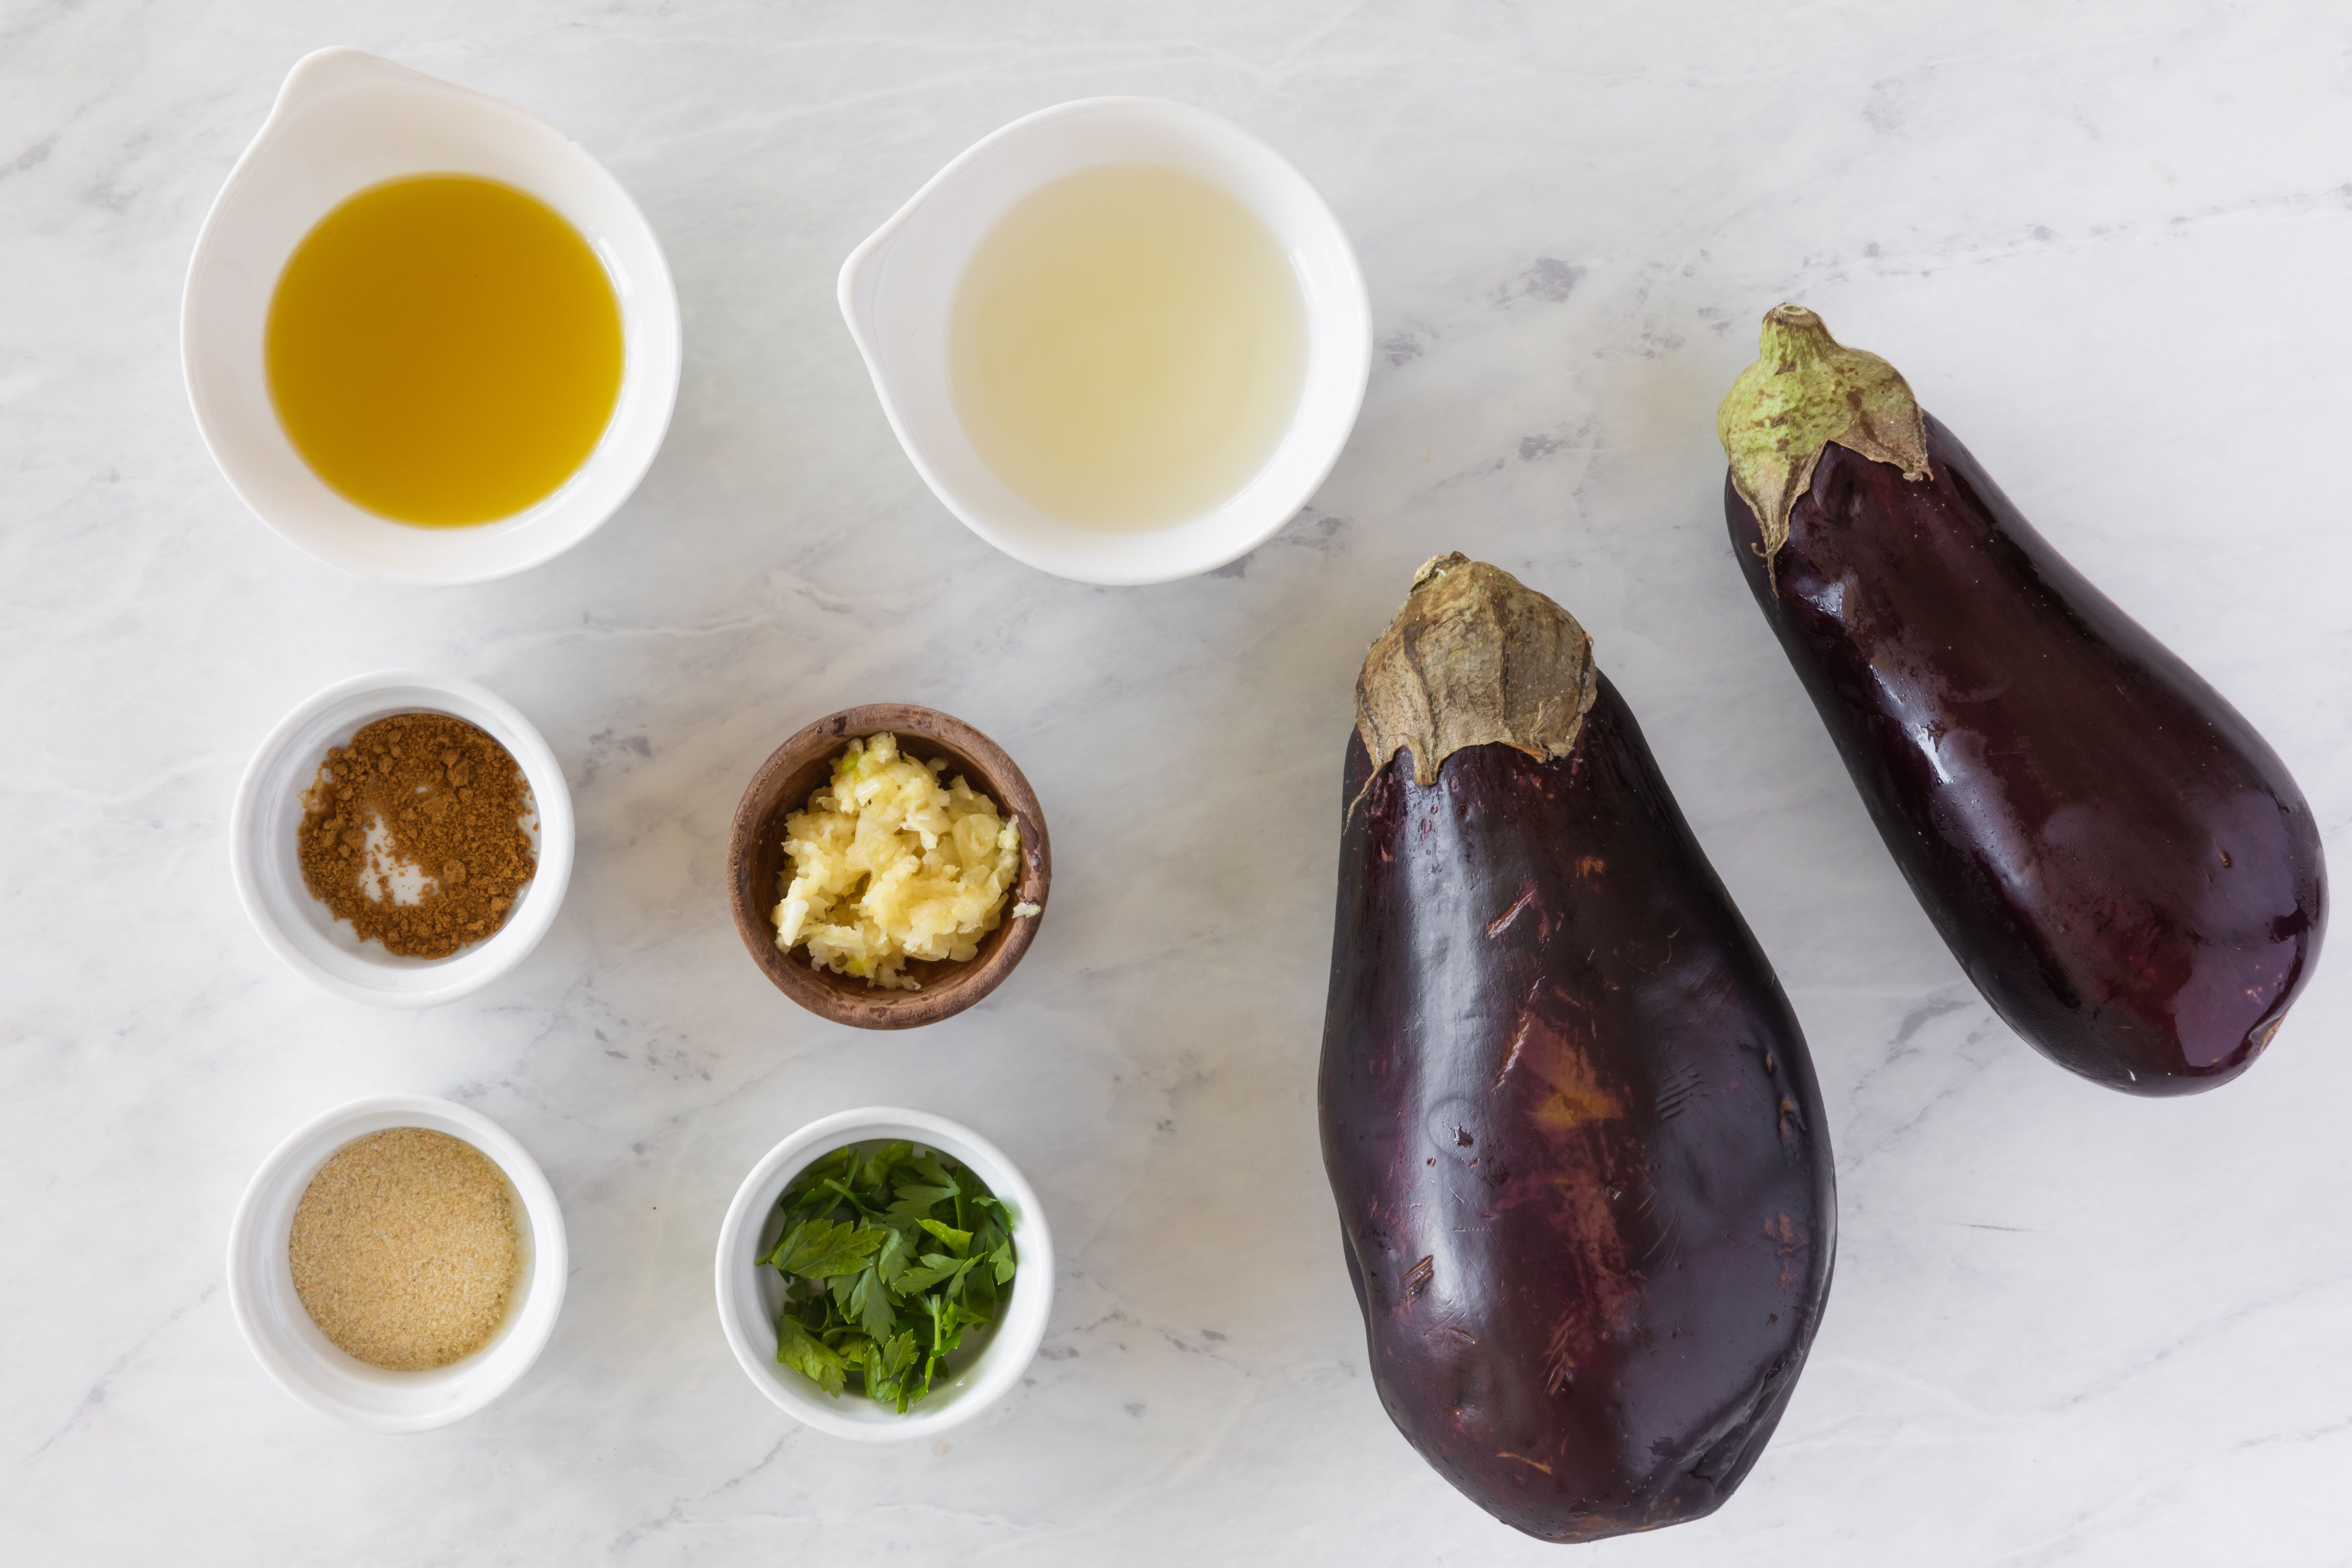 Ingredients for baba ghanoush